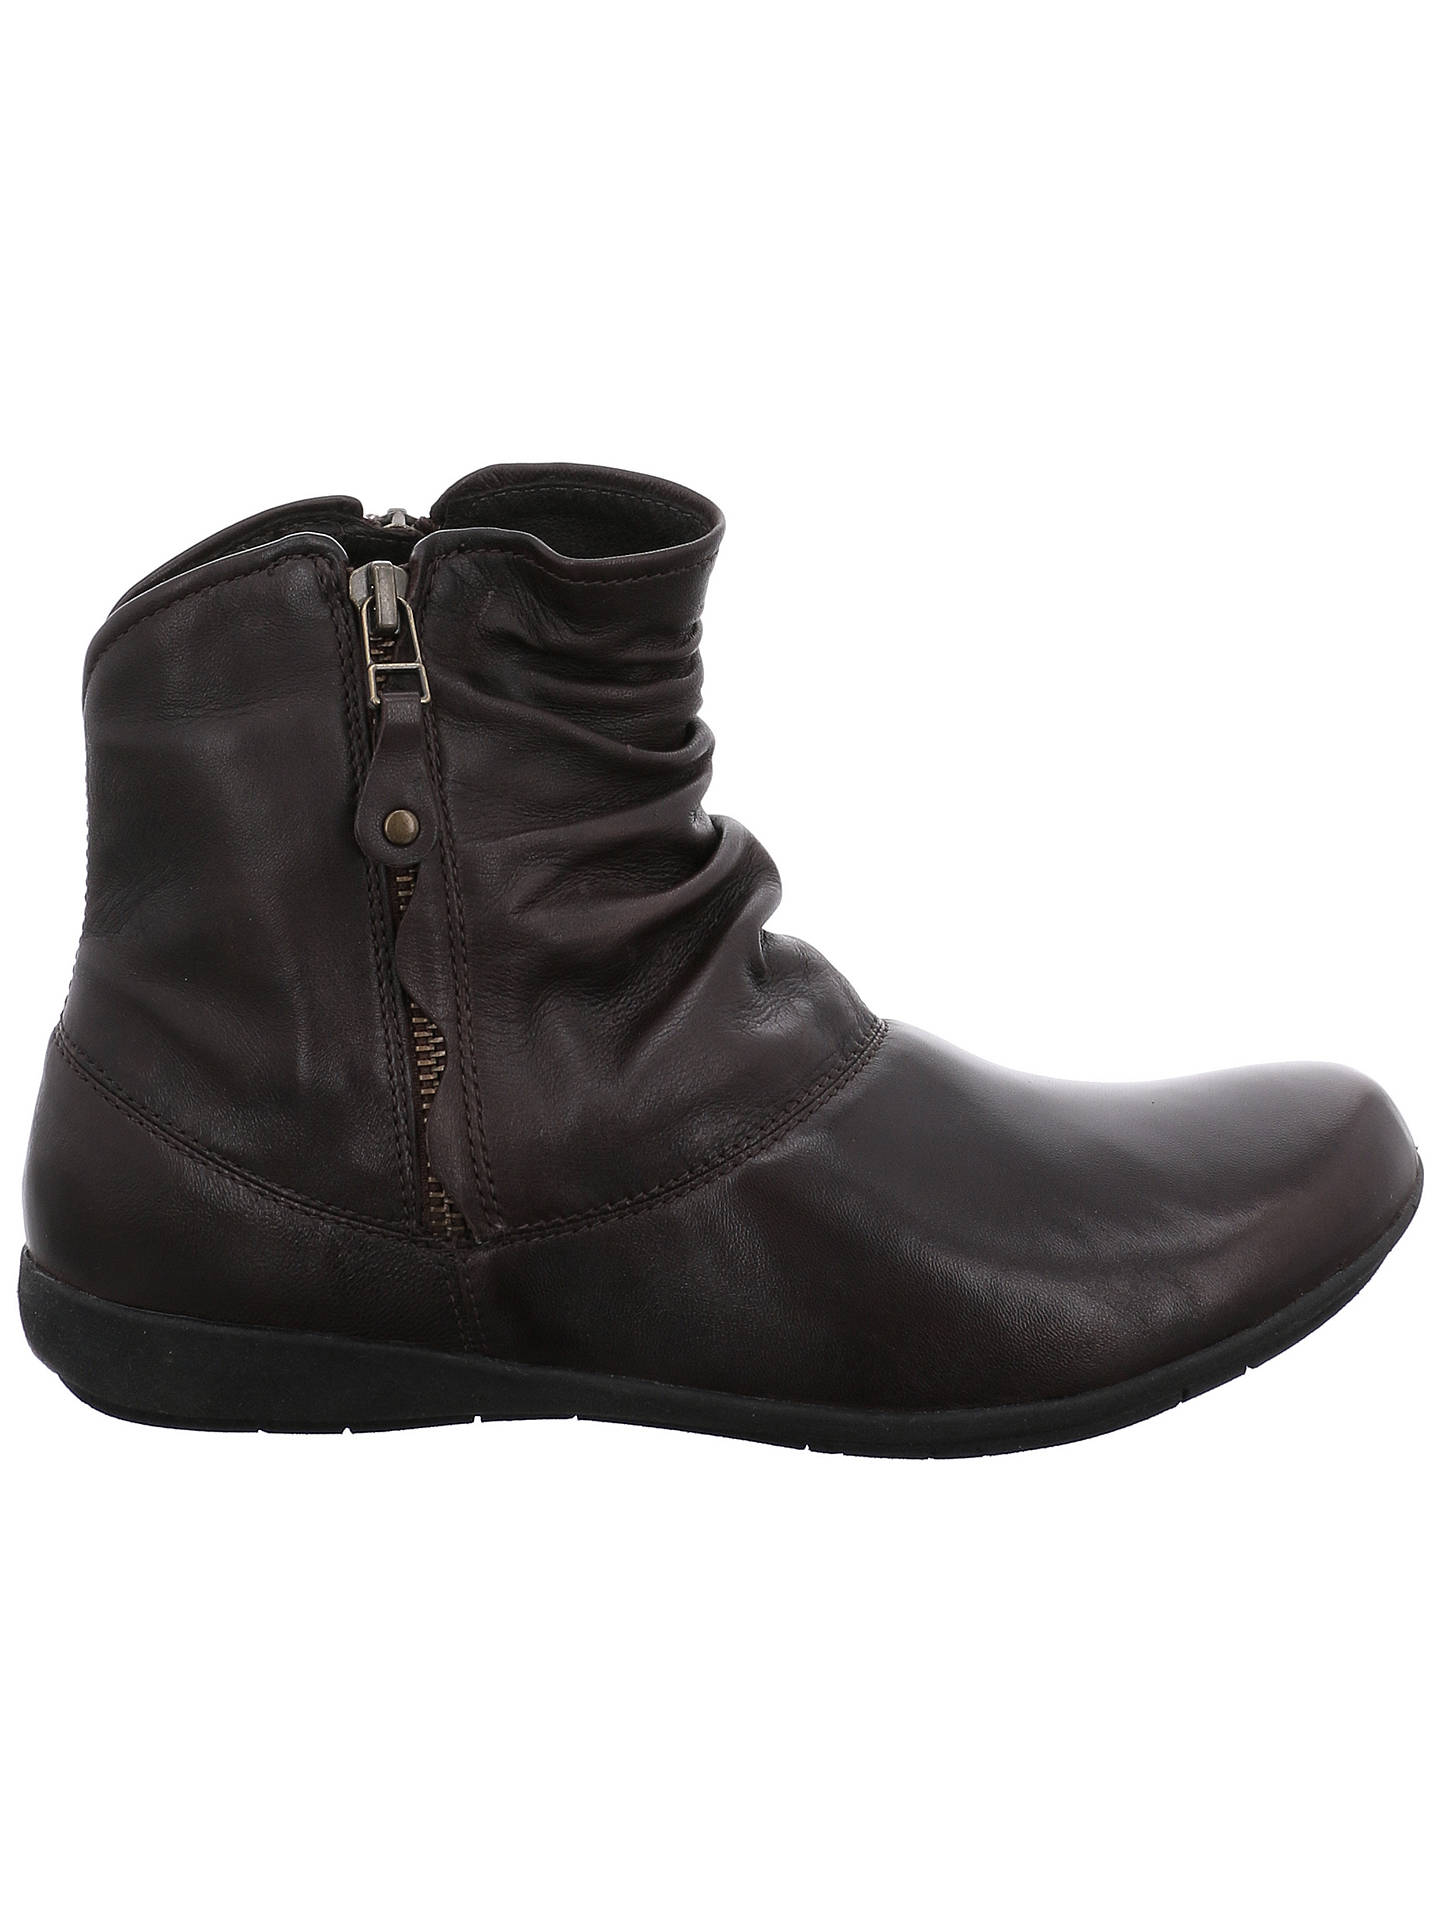 BuyJosef Seibel Faye Ankle Boots, Black, 3 Online at johnlewis.com